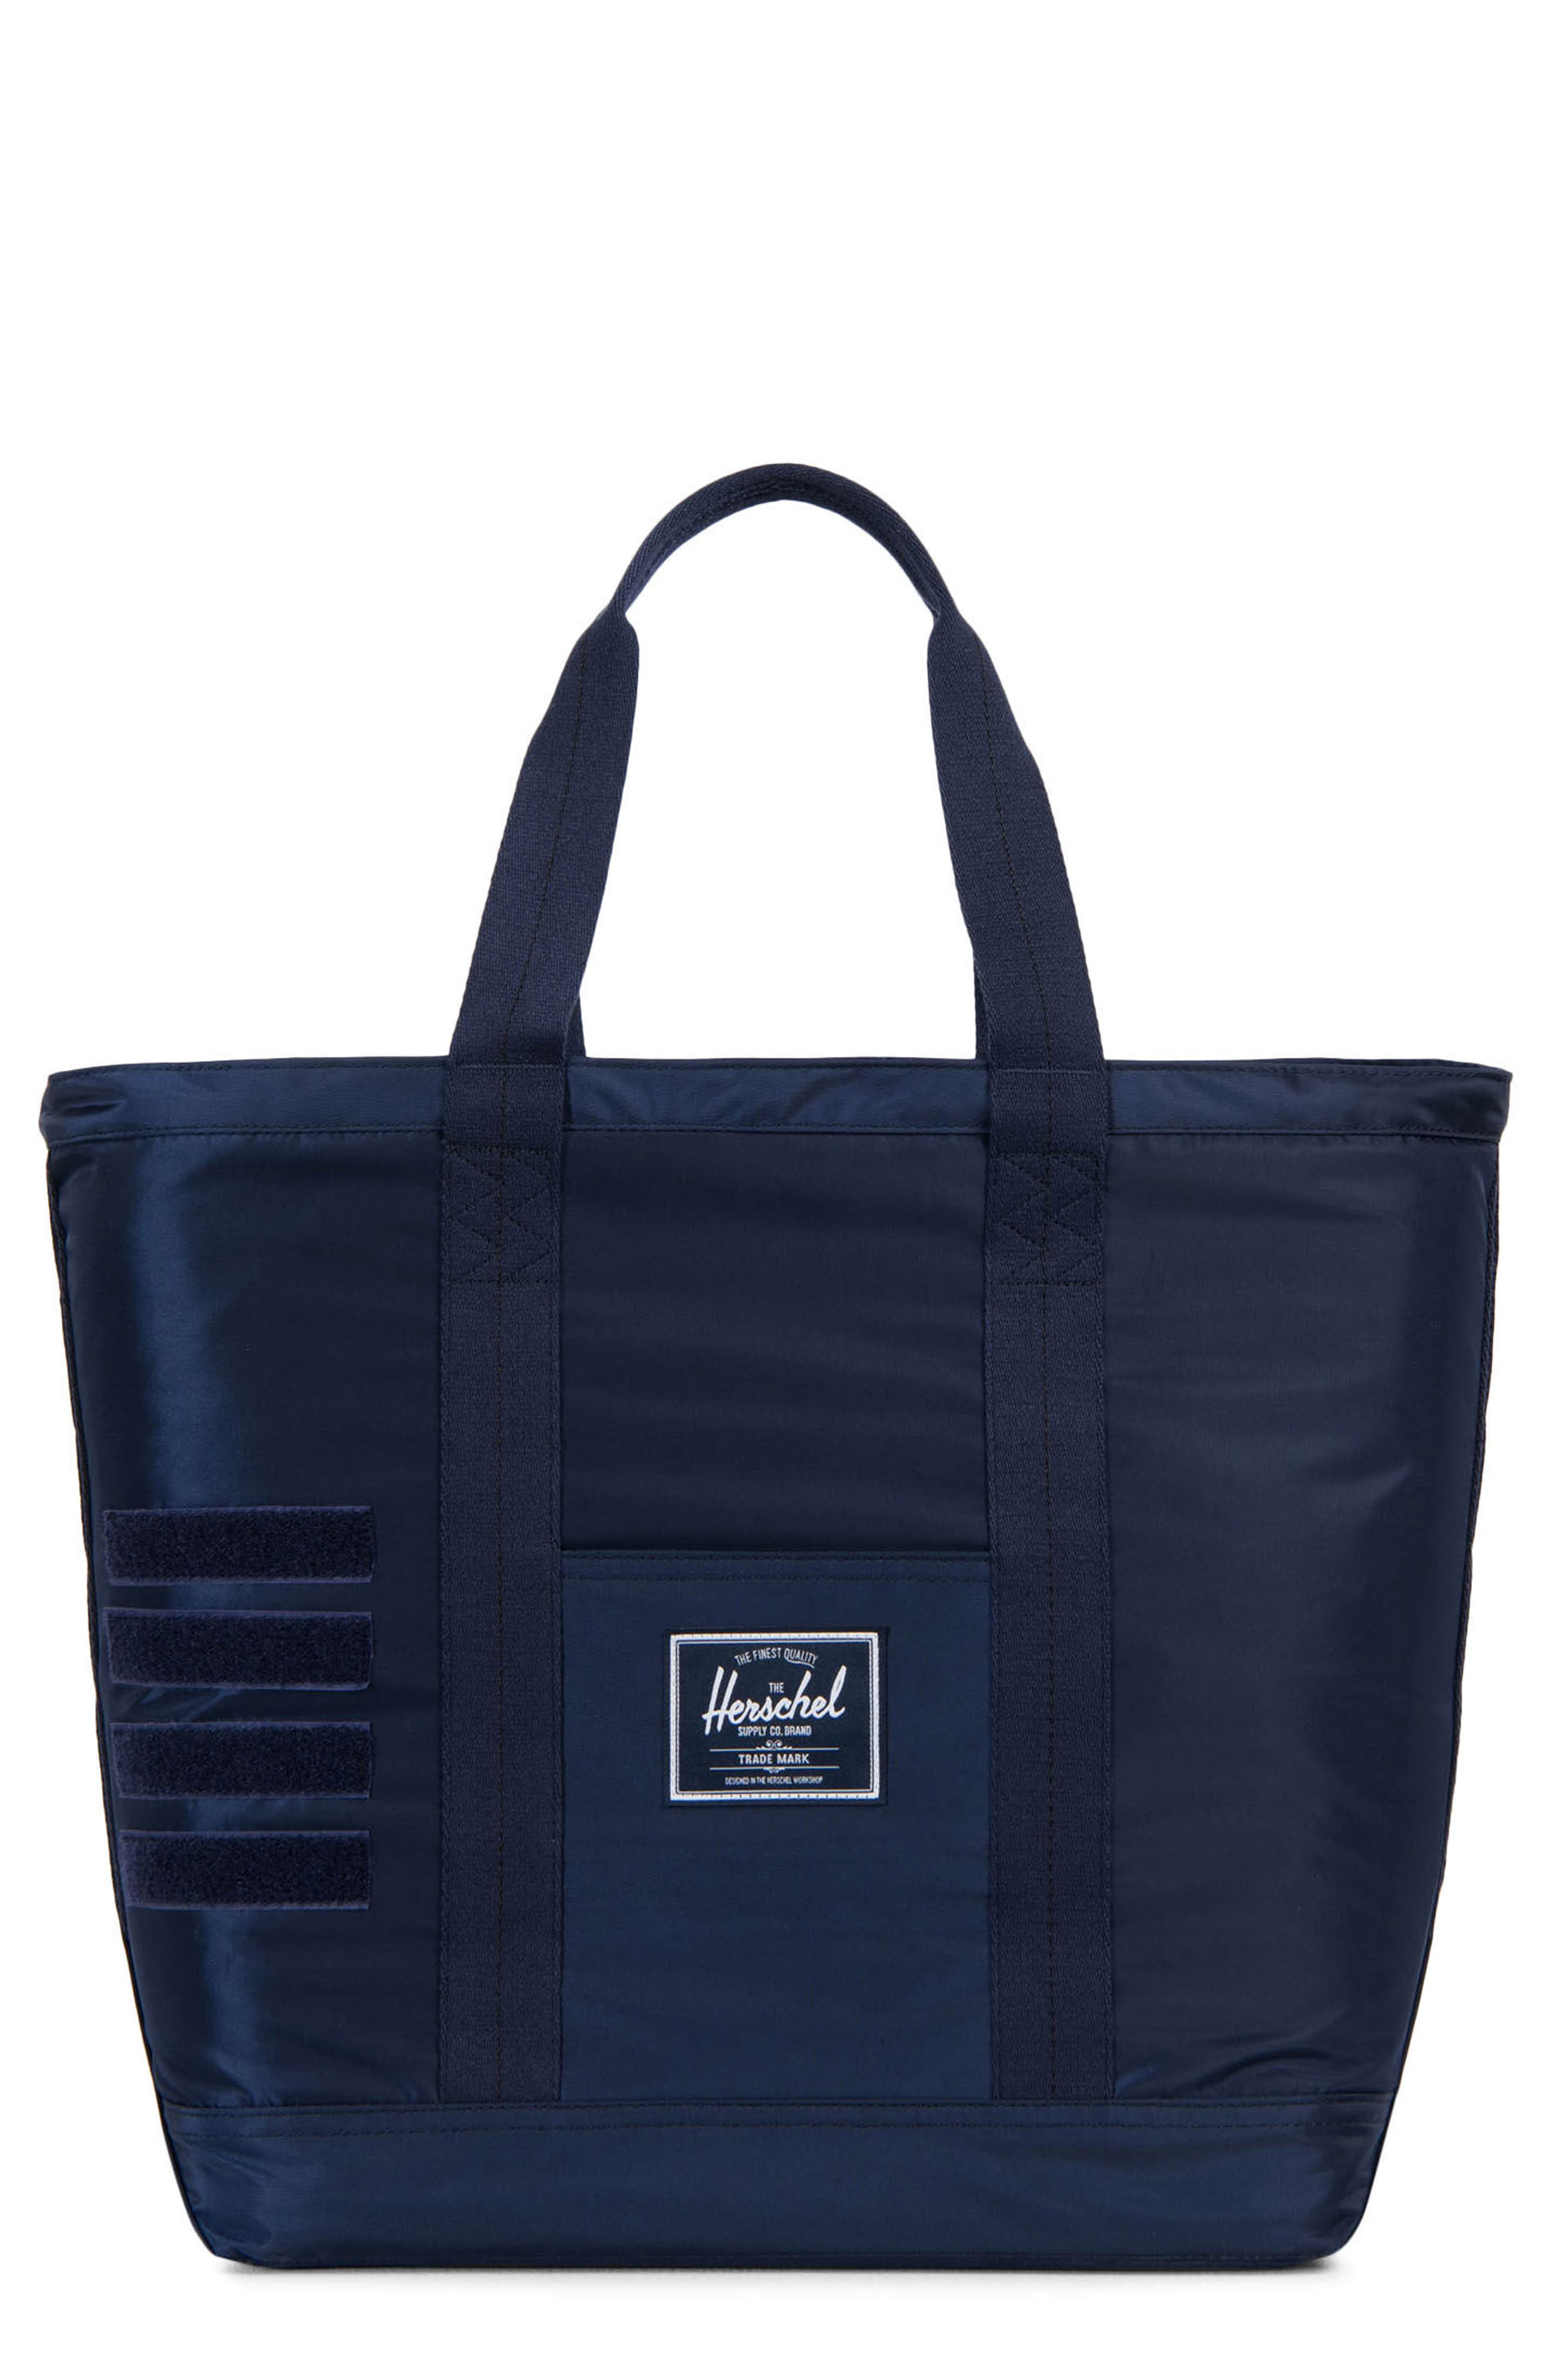 Main Image - Herschel Supply Co. Bamfield Surplus Collection Tote Bag